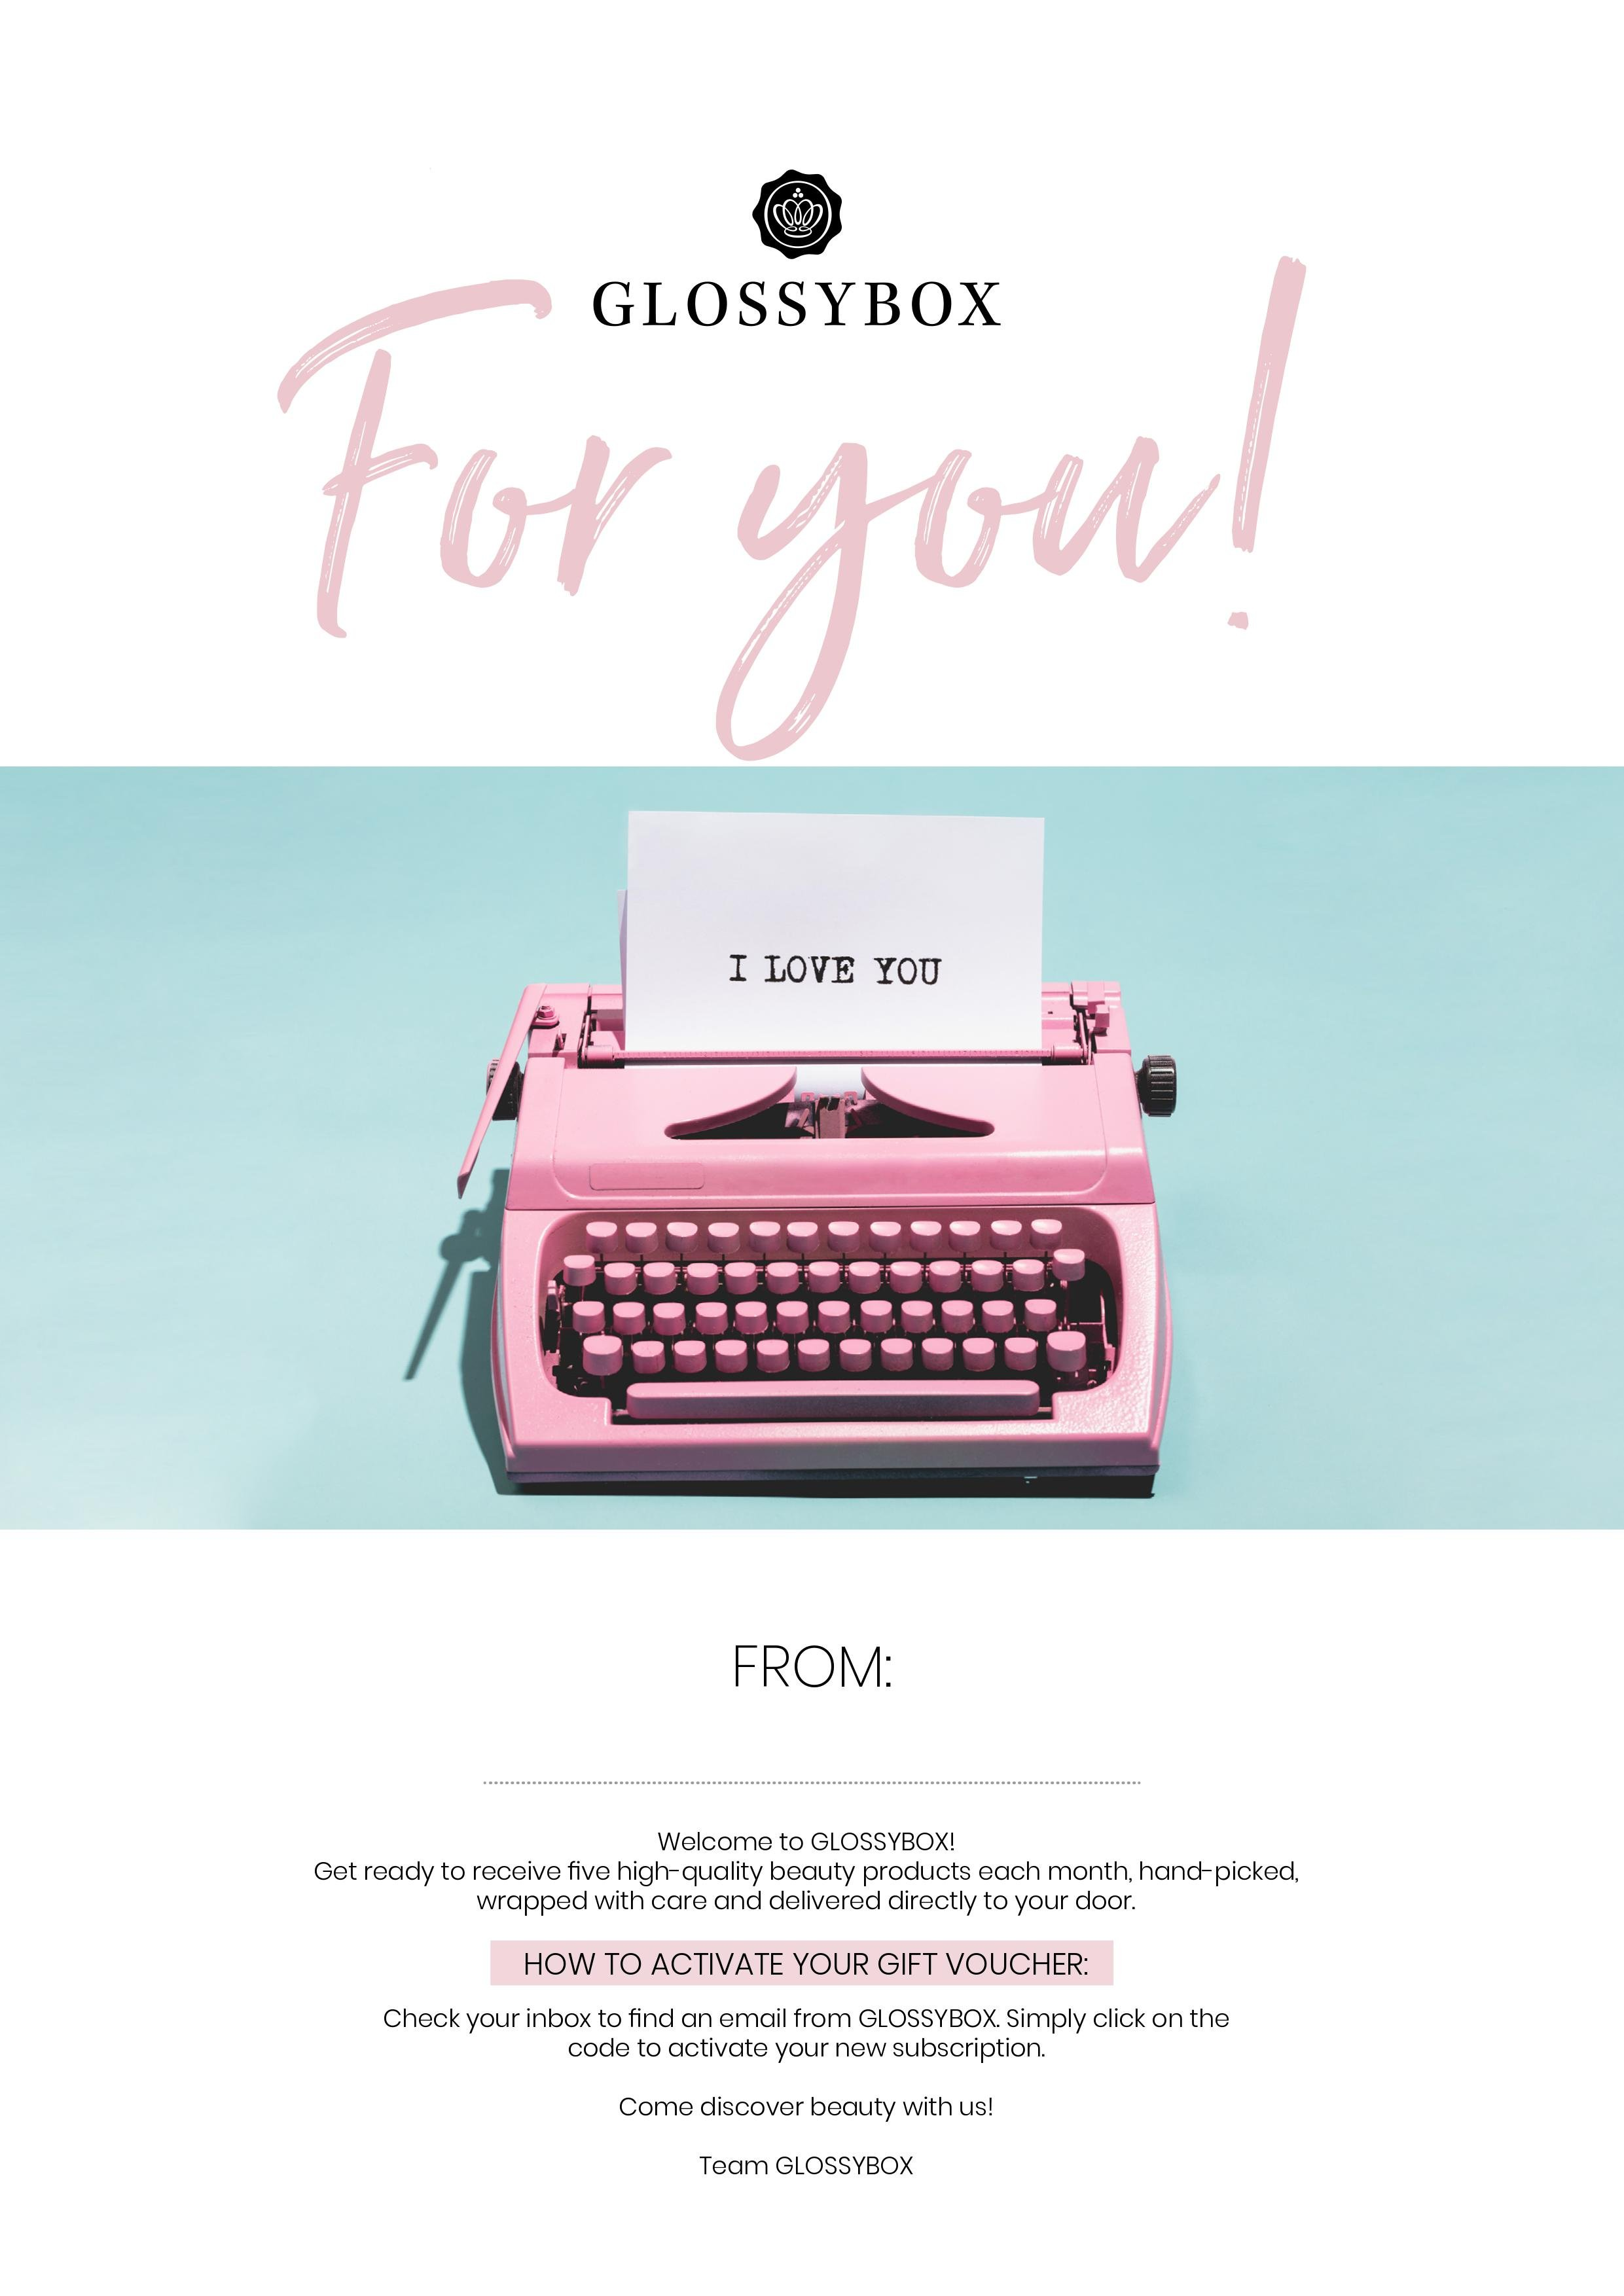 glossybox-egift-voucher-printable-card-i-love-you